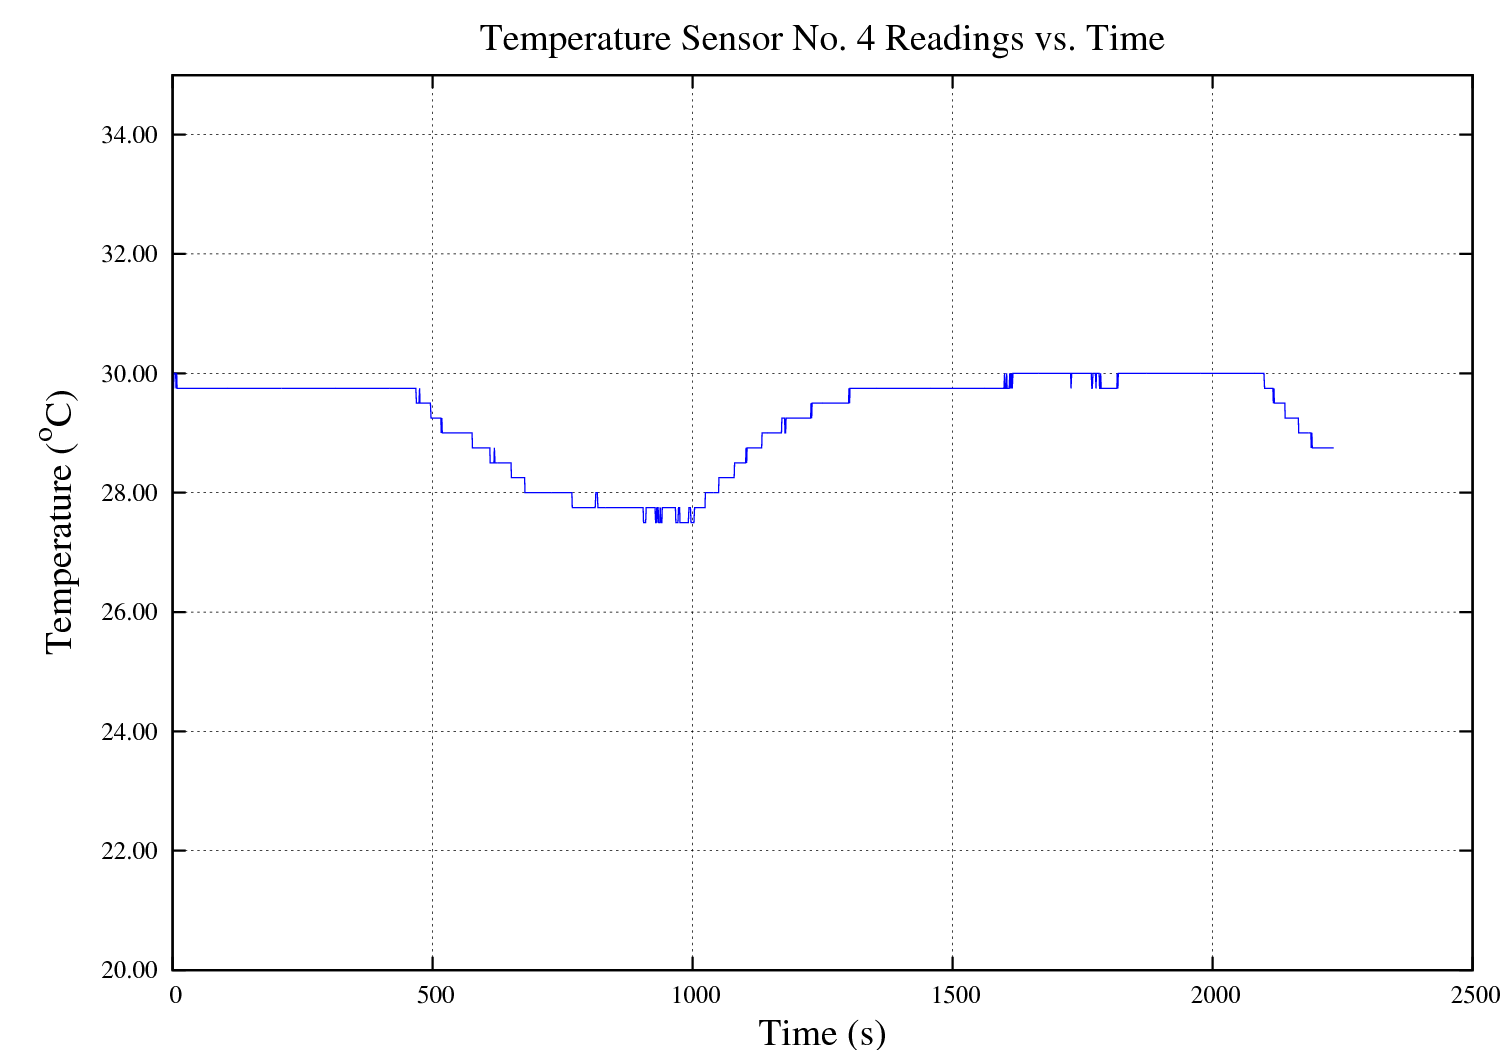 Temperature Sensor #4 vs. Time